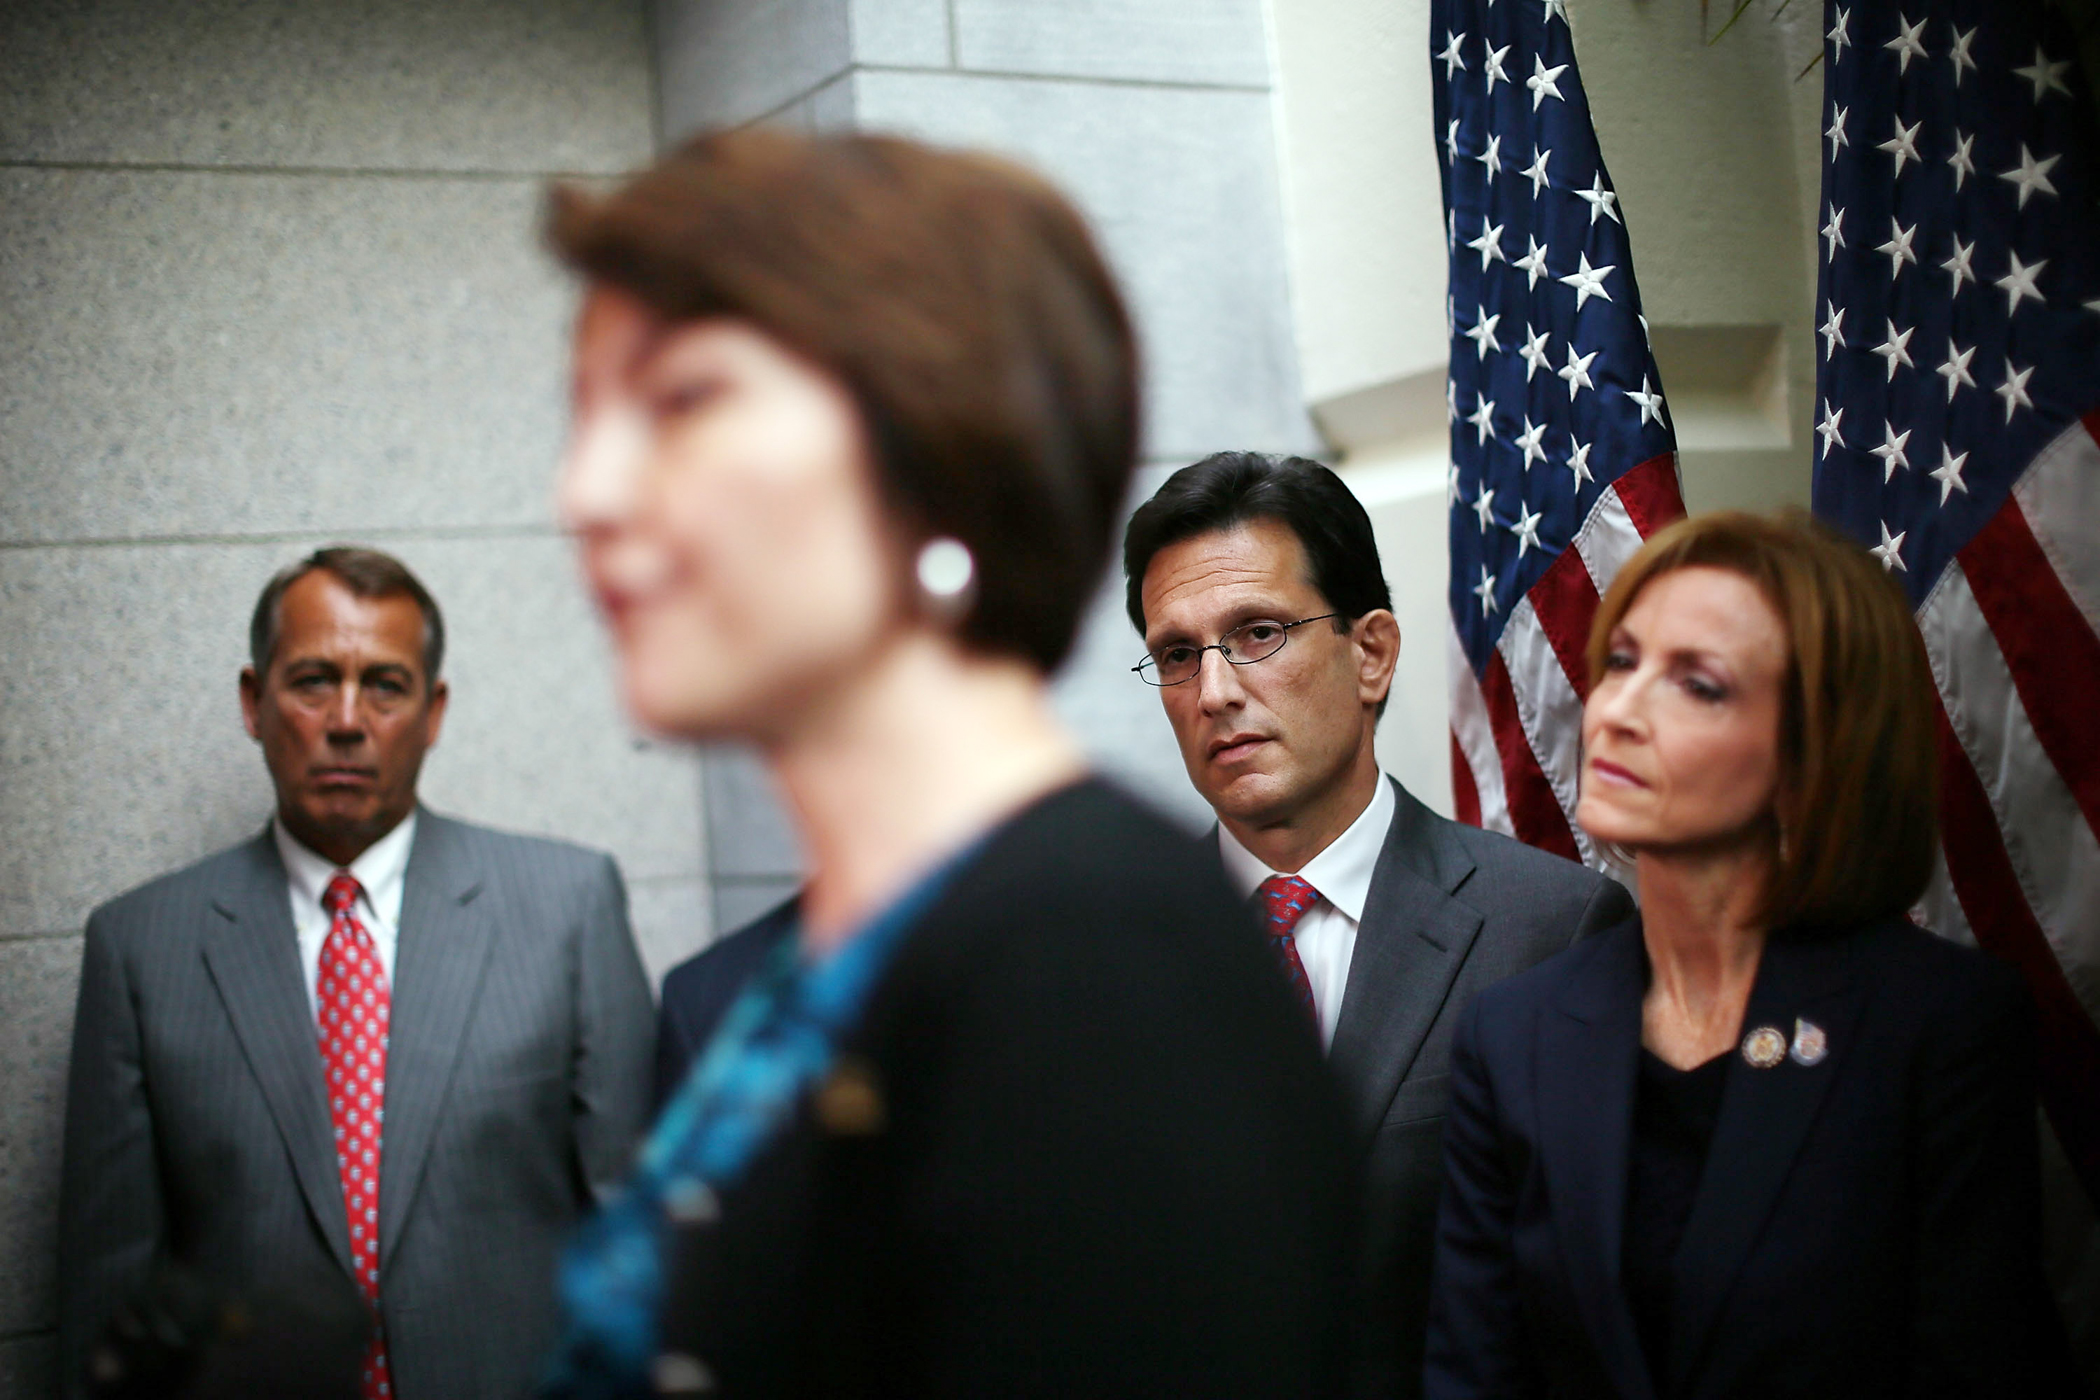 From left, Speaker of the House John Boehner, House Republican Conference vice chair Cathy McMorris Rodgers, House majority leader Eric Cantor and Representative Nan Hayworth attend a news conference on Capitol Hill on July 10, 2012